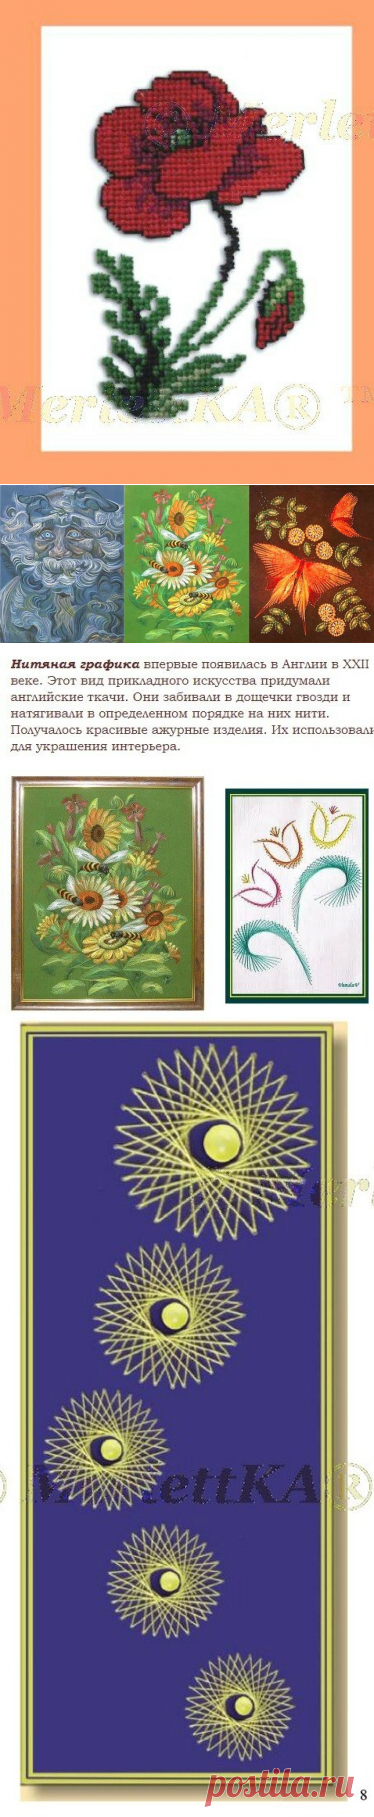 SCHOOL OF HANDICRAFT (RUS) ~ SHILKOVA EA - EMBROIDERY ON PAPER - FULL PRACTICAL COURSE / Everything from the world of needlework (I study and share various techniques and types of needlework)